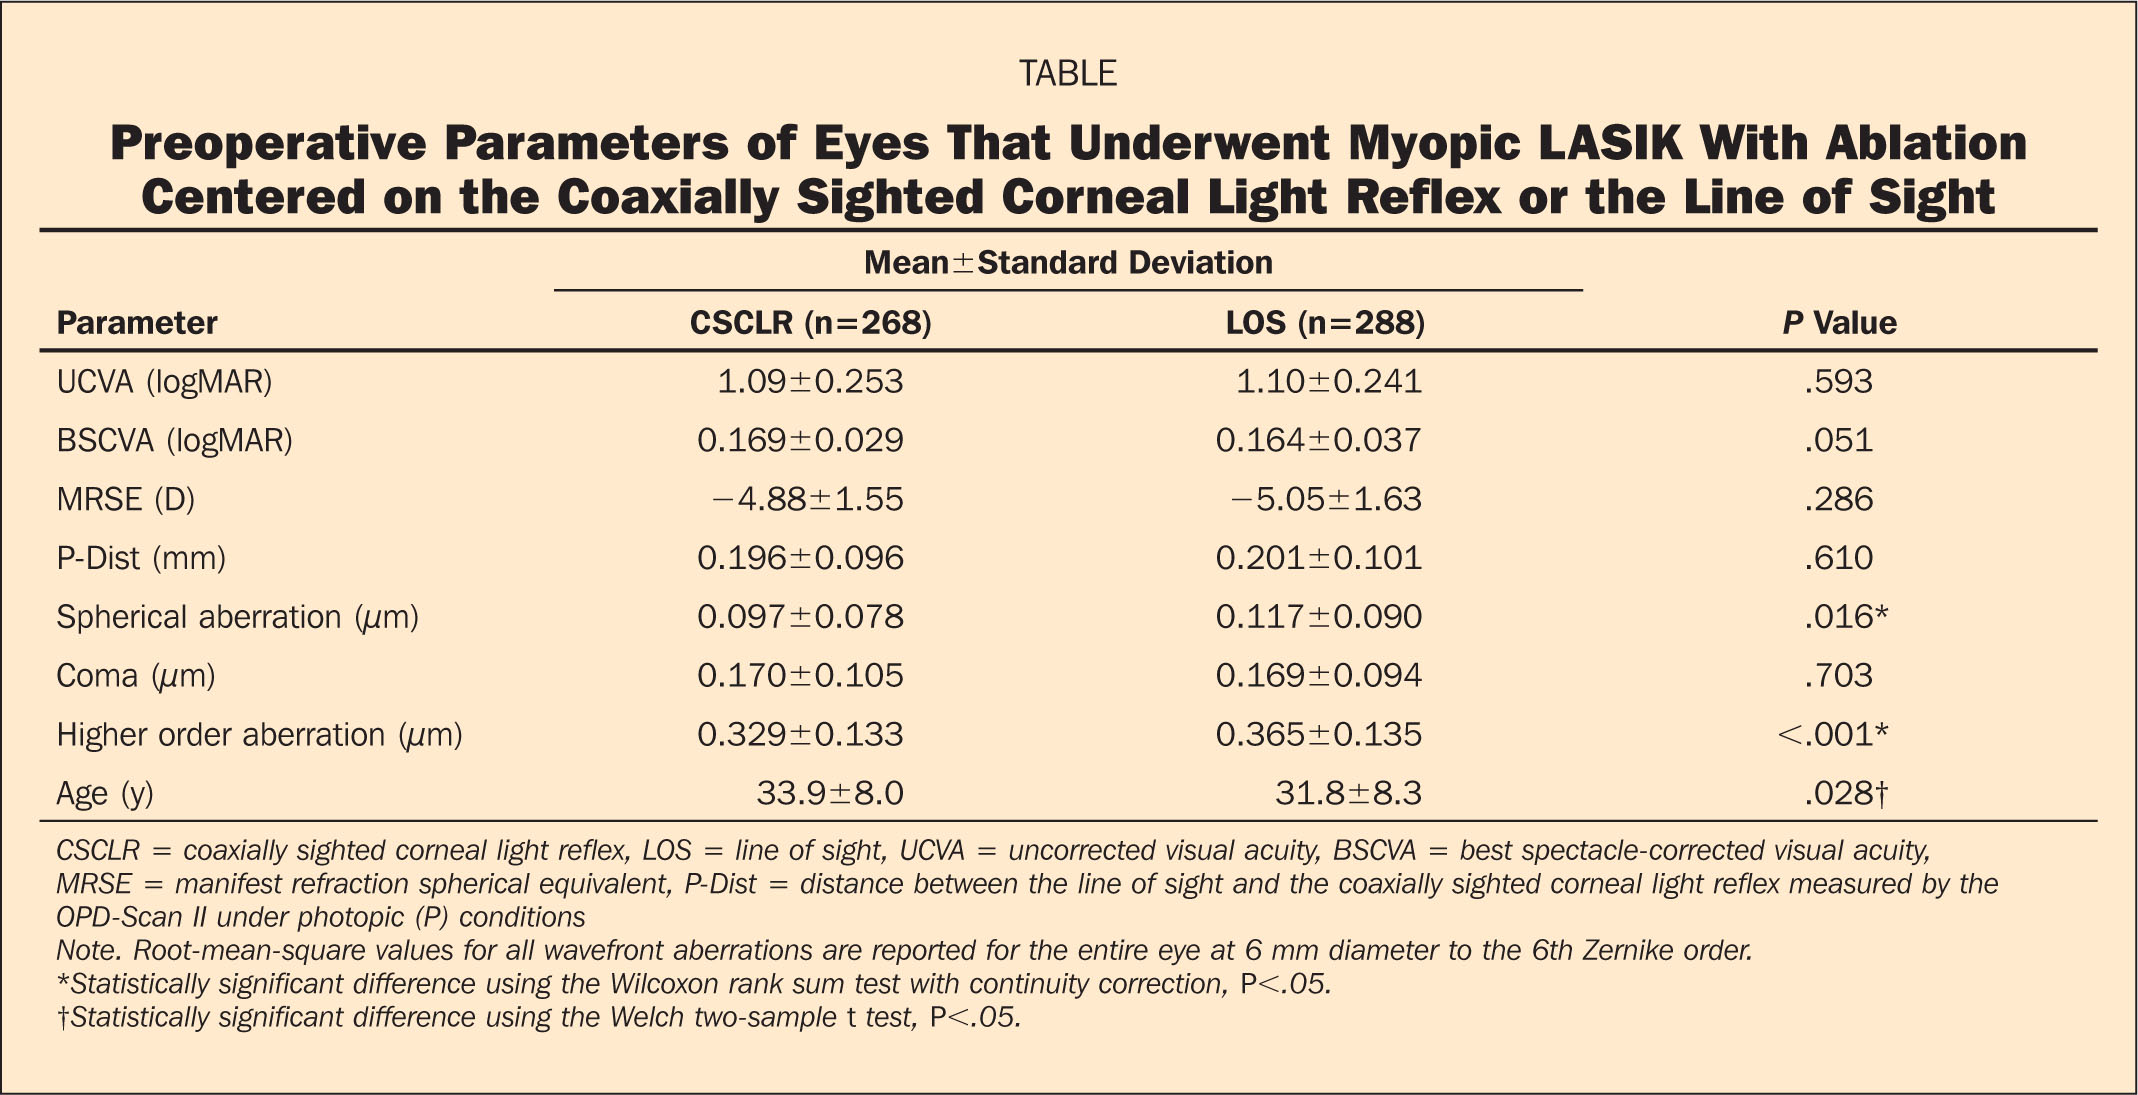 Preoperative Parameters of Eyes that Underwent Myopic LASIK with Ablation Centered on the Coaxially Sighted Corneal Light Reflex or the Line of Sight